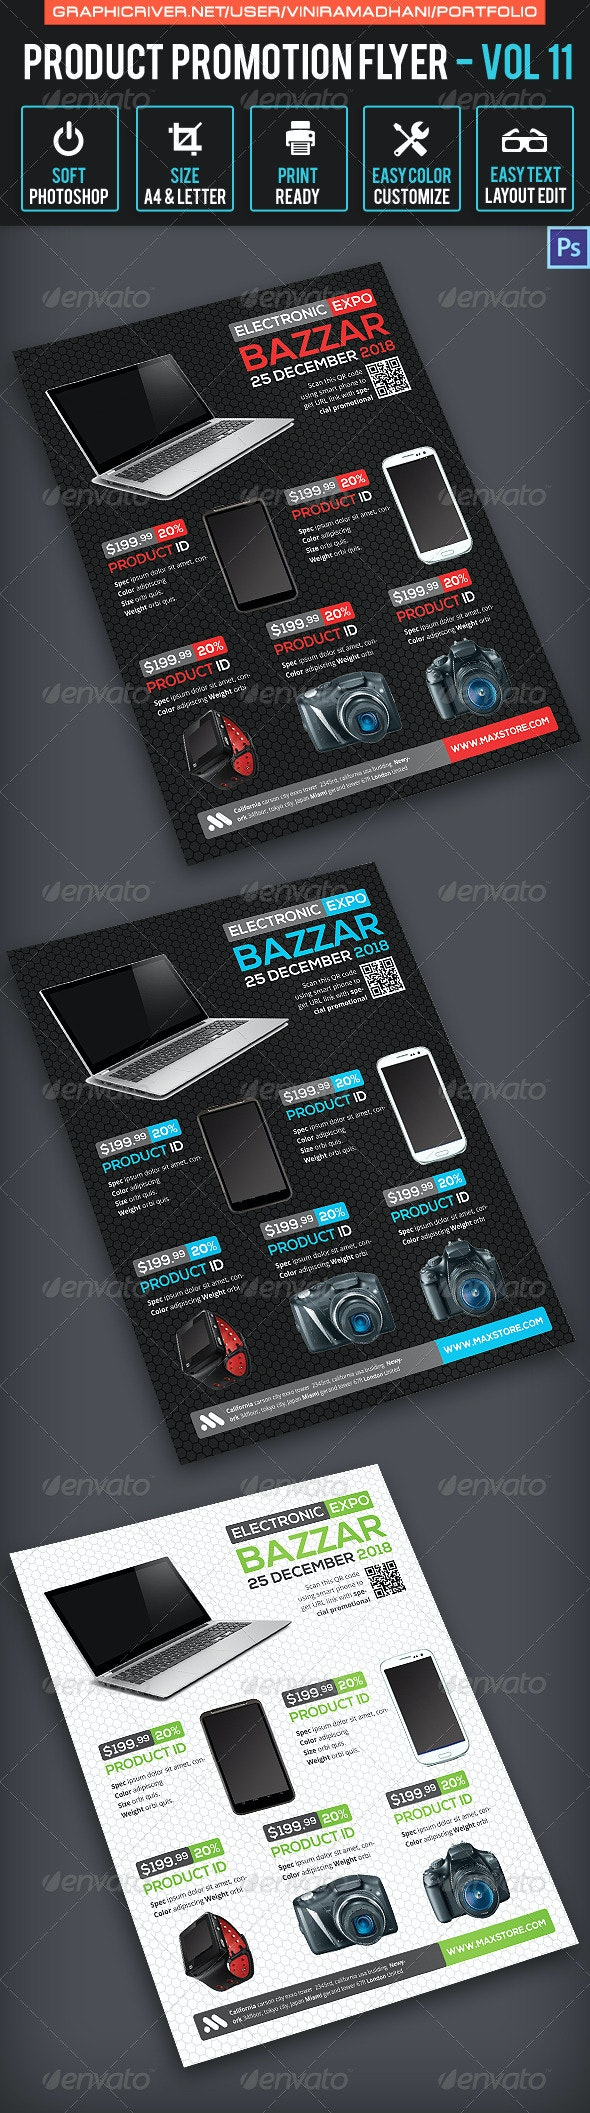 Product Promotion Flyer Volume 11 - Commerce Flyers